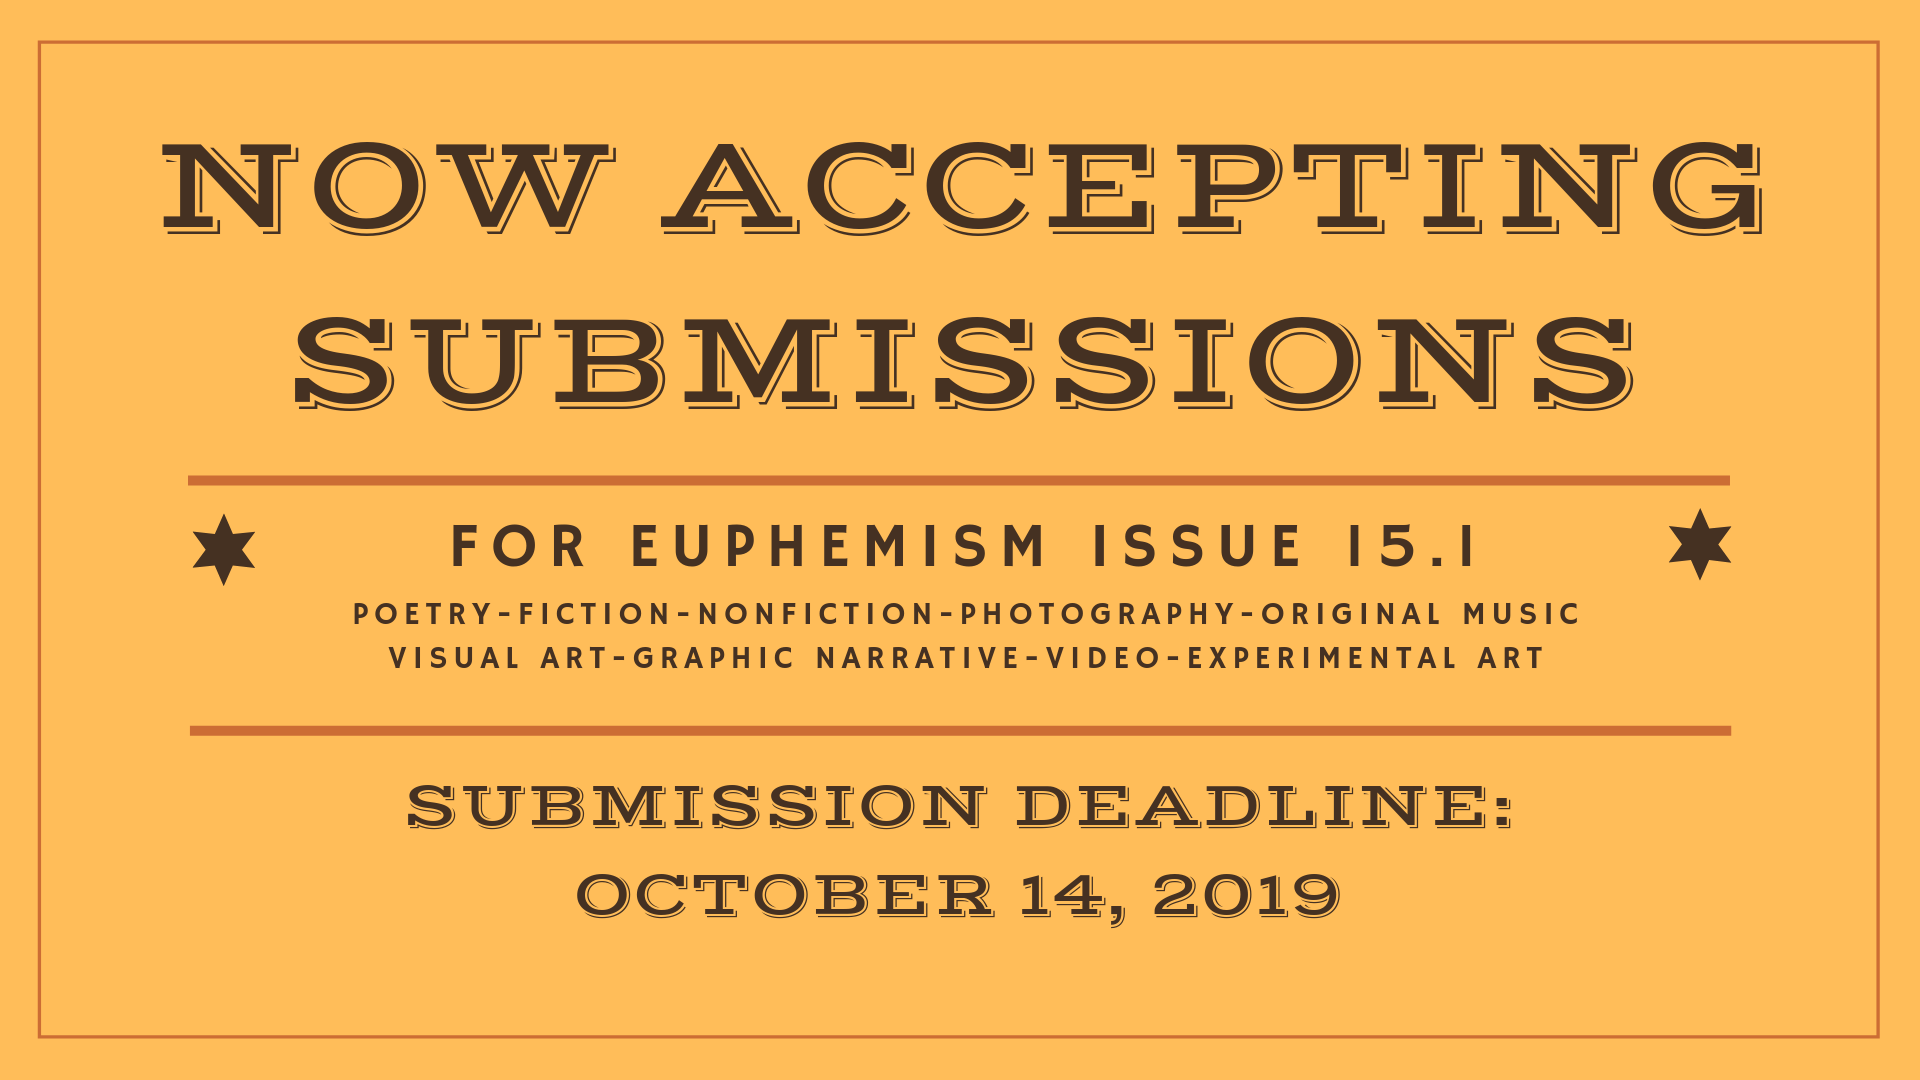 now accepting submissions for euphemism issue 15.1